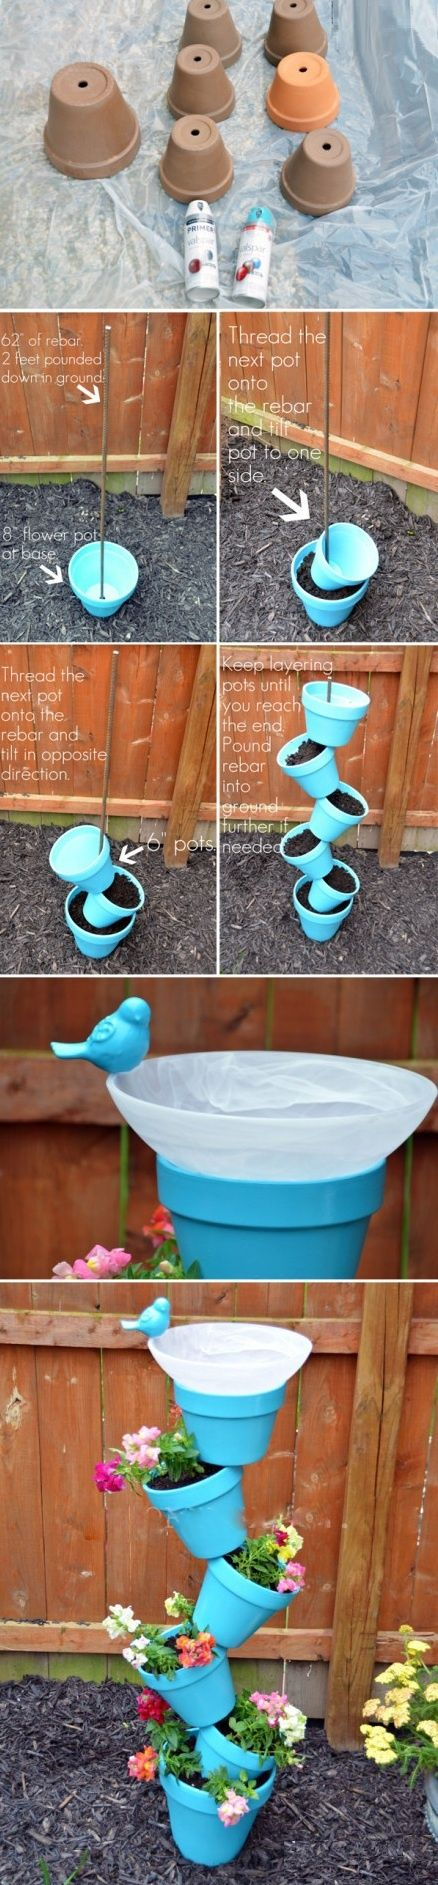 Gotta do this next spring flower pots